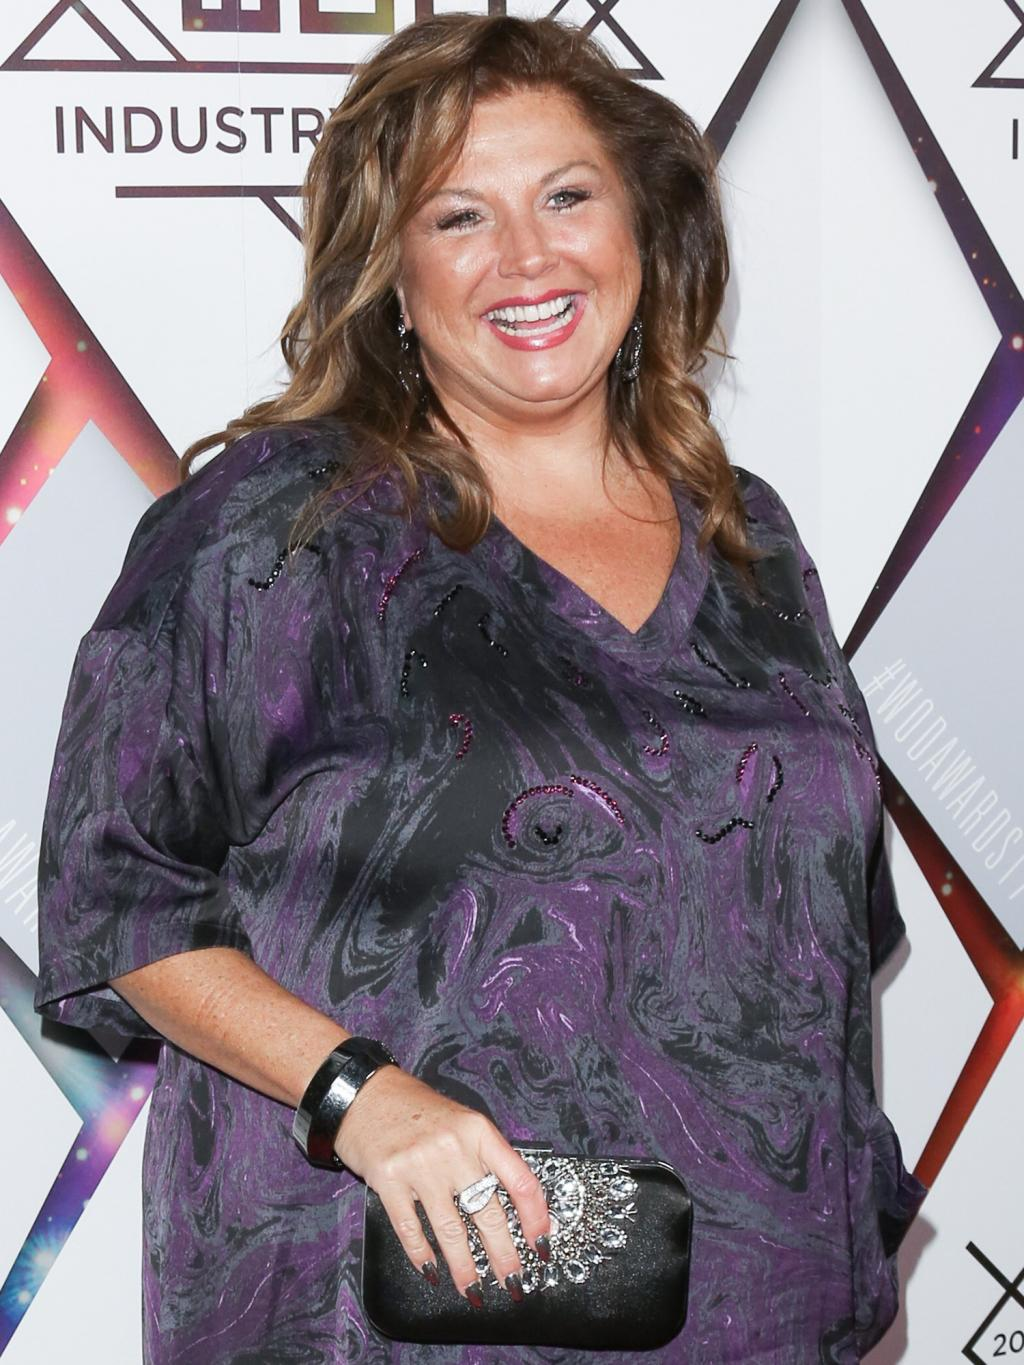 Dance Moms' Abby Lee Miller Is Trying 'to Stay Positive' Amid Current Legal Woes: 'I Don't Want to Make Light of It'